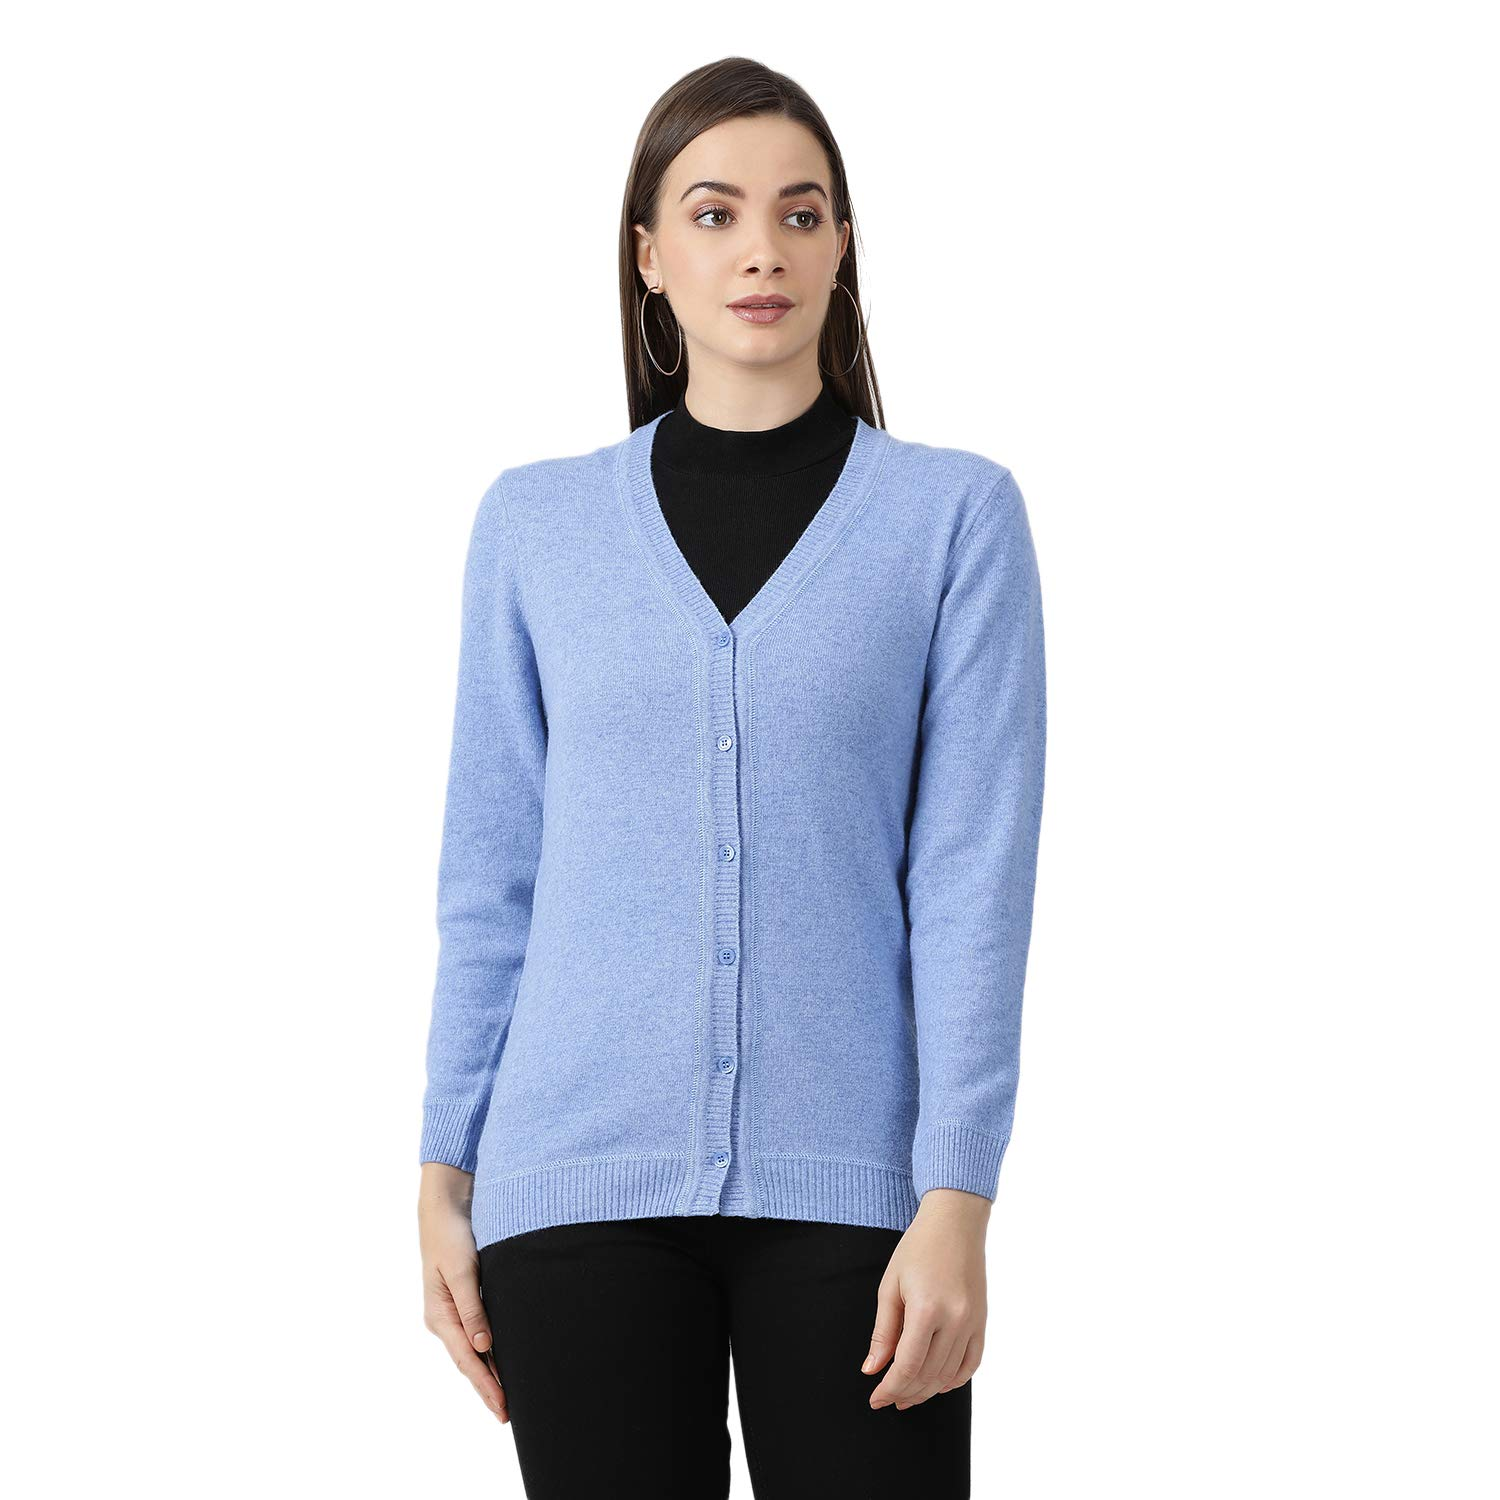 Monte Carlo Women's Solid Wool V Neck Cardigan (Sky Blue, S